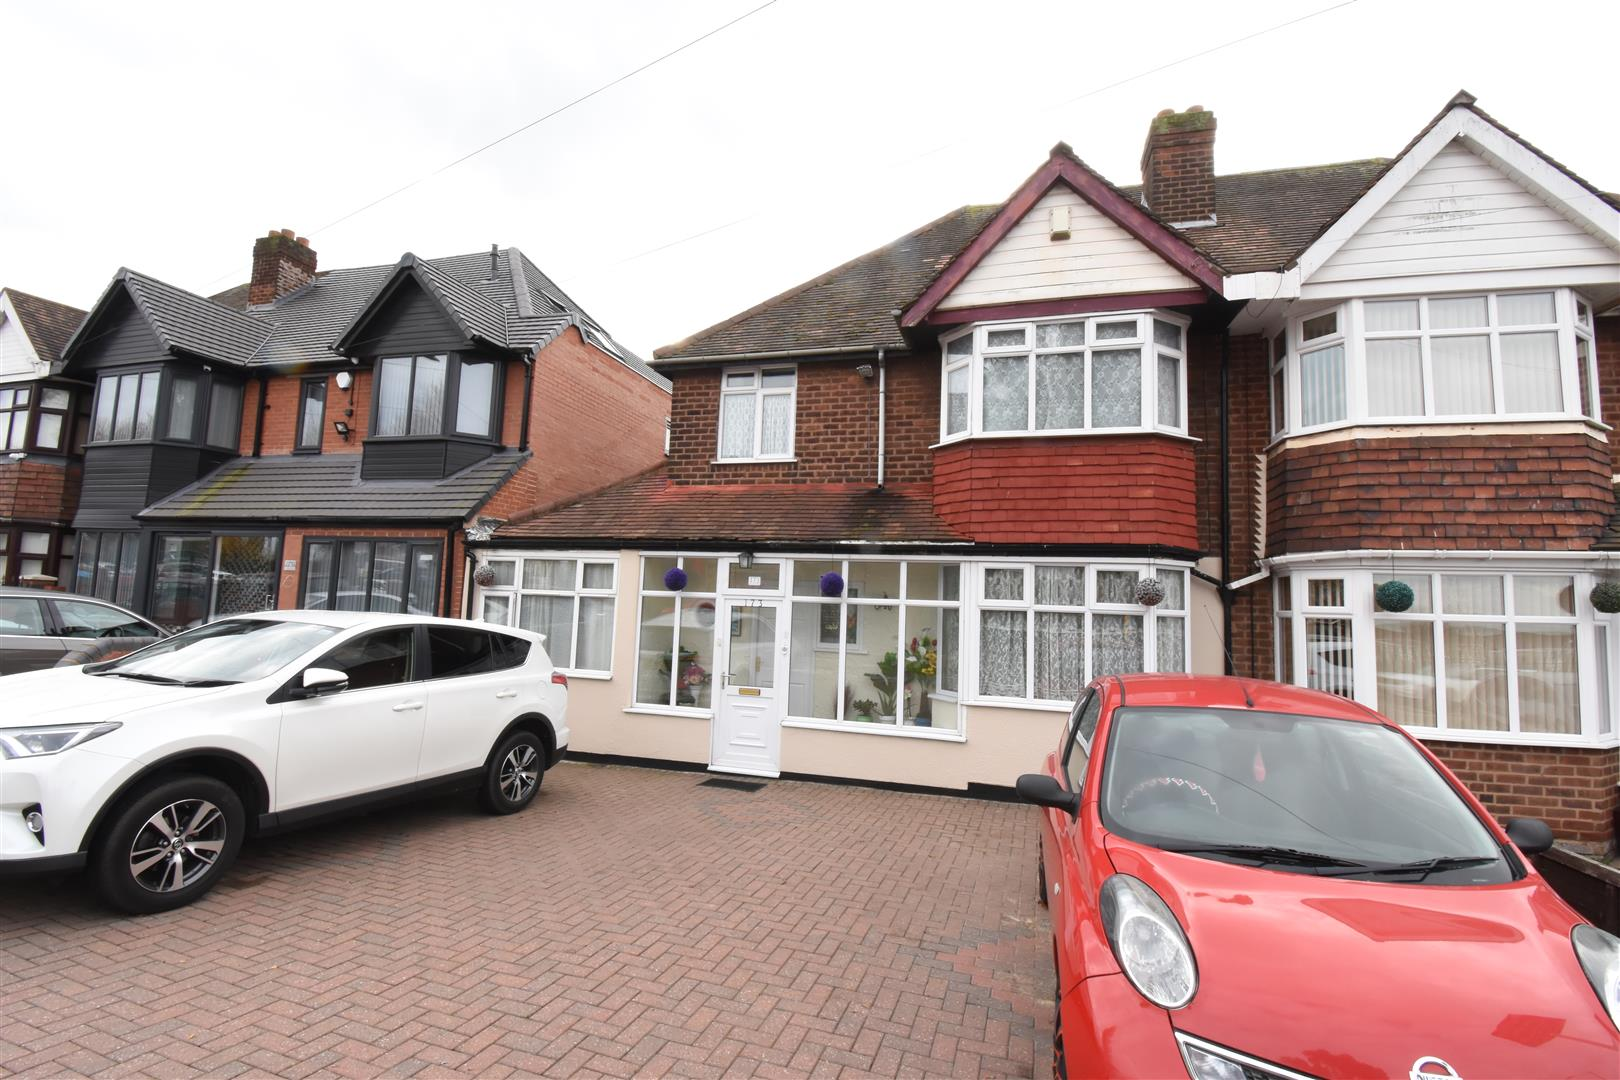 3 bed house for sale in Bromford Road, Birmingham - Property Image 1